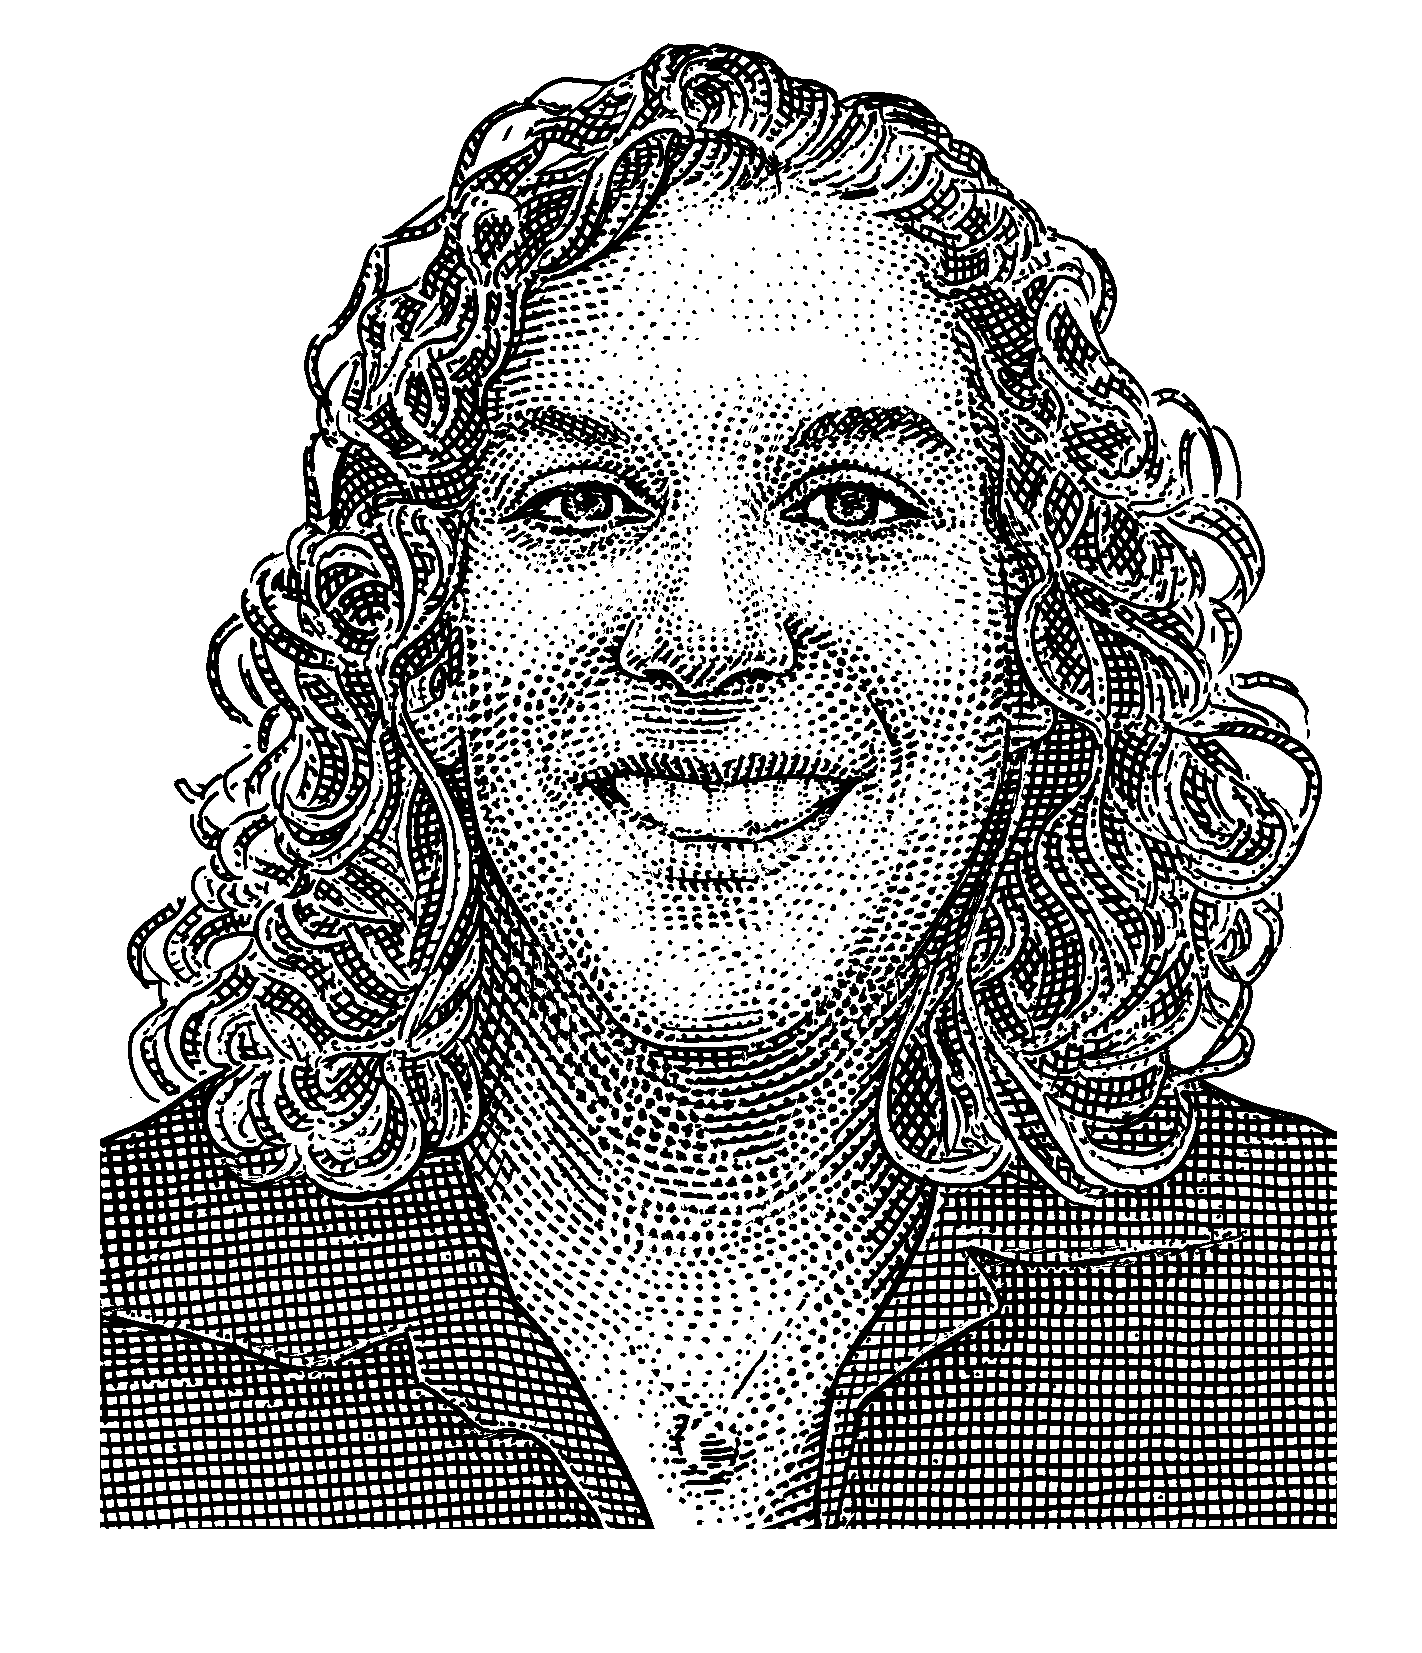 A headshot of Interim Executive Director, Donna Hershkowitz